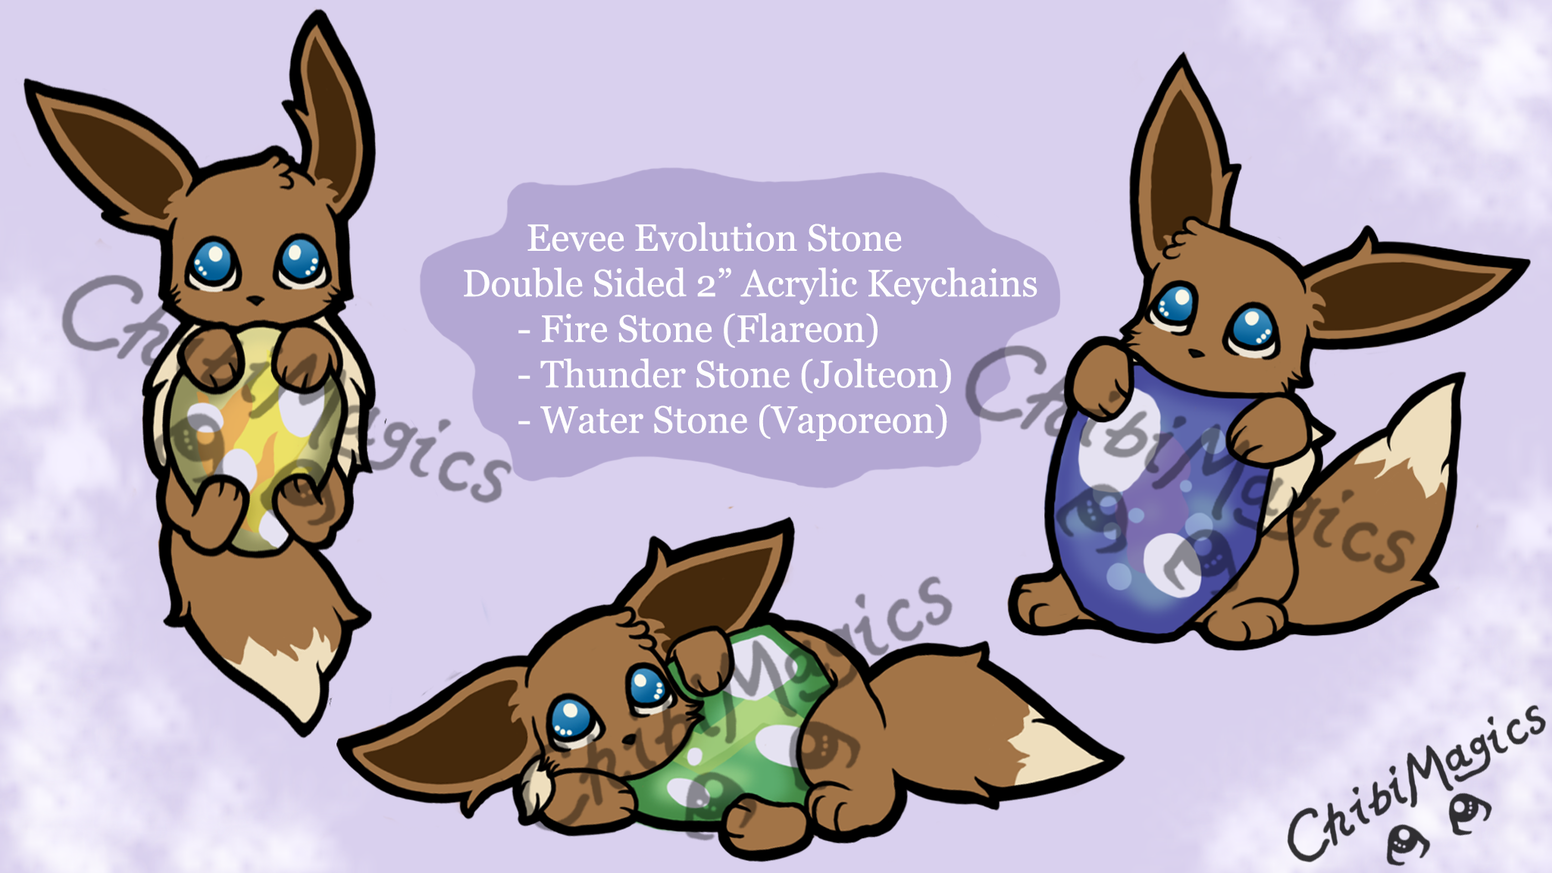 2 Double Sided Pokemon Eevee Evolution Stone Keychains